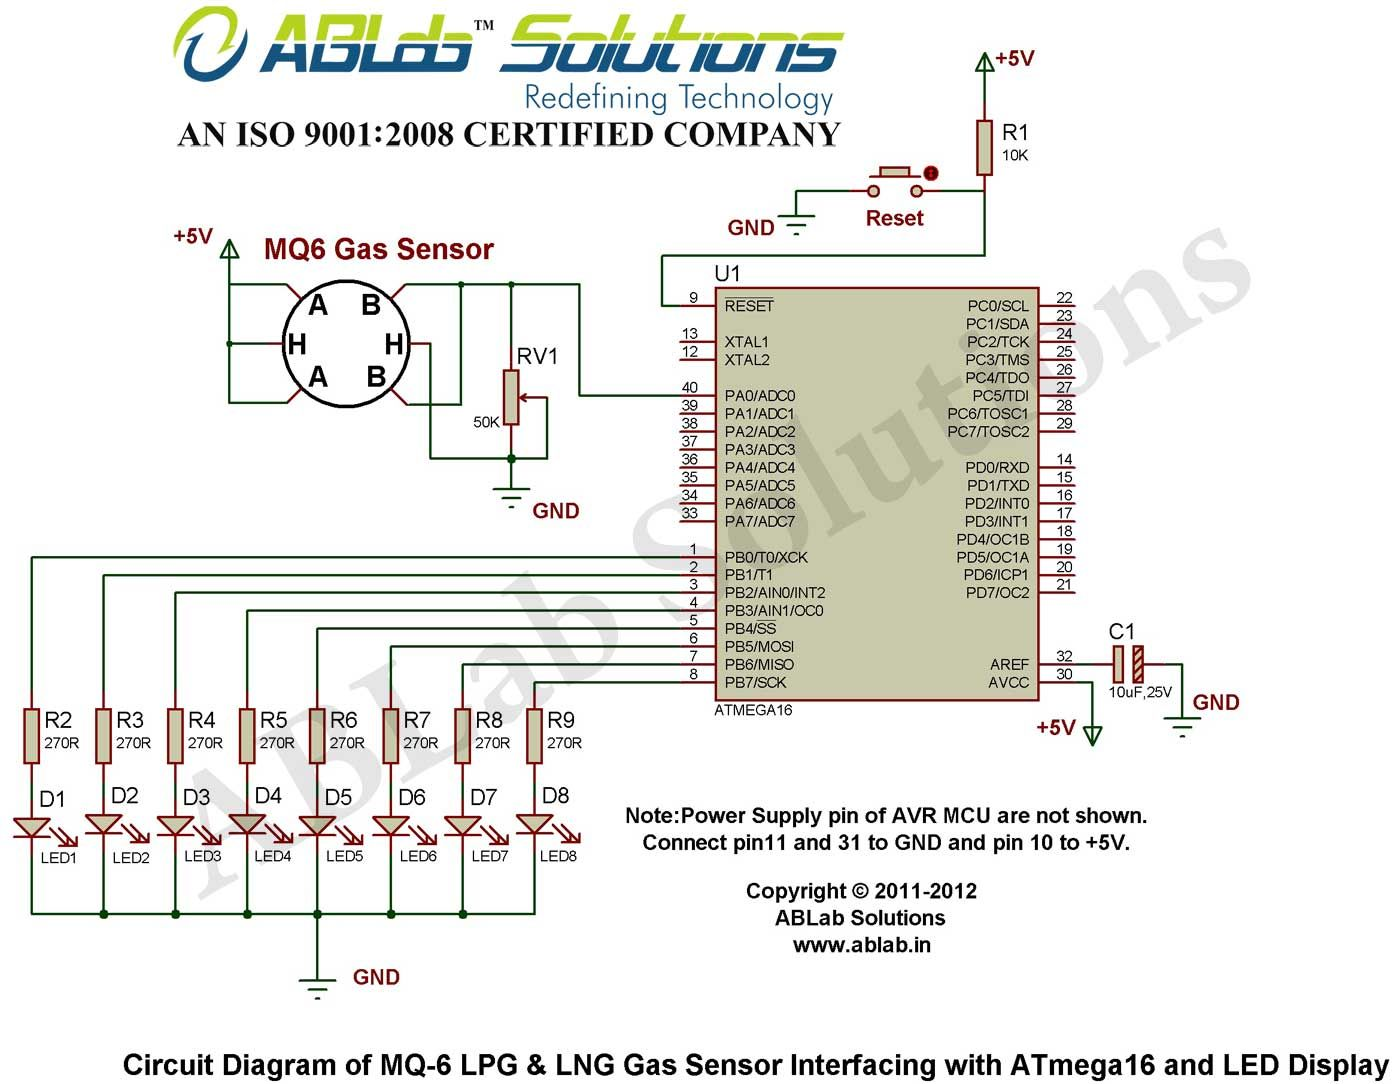 mq 6 lpg lng gas sensor interfacing with avr atmega16 rh pinterest com AC Diagram Landscape Diagram